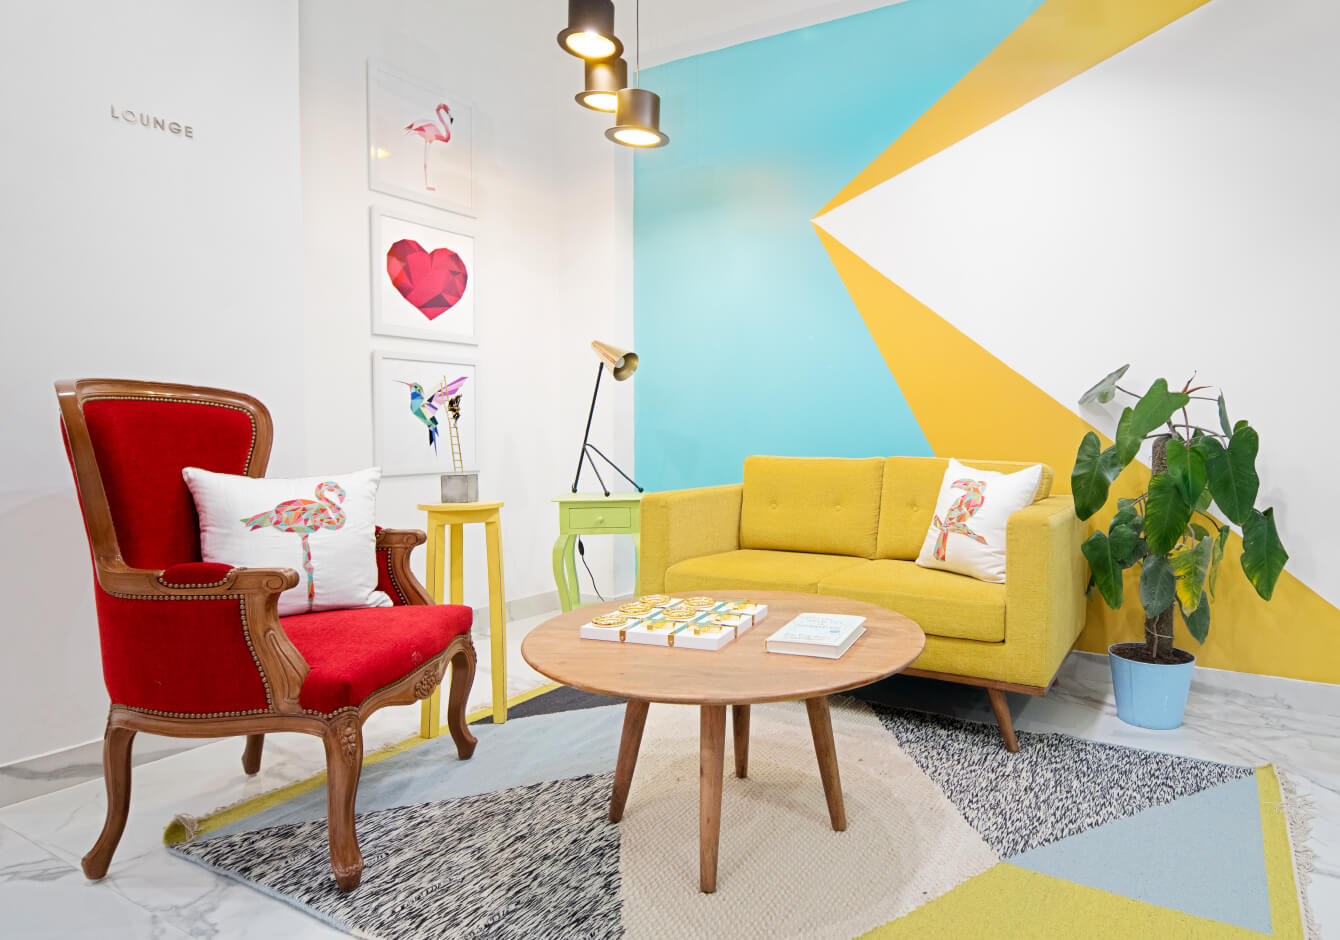 livspace design center